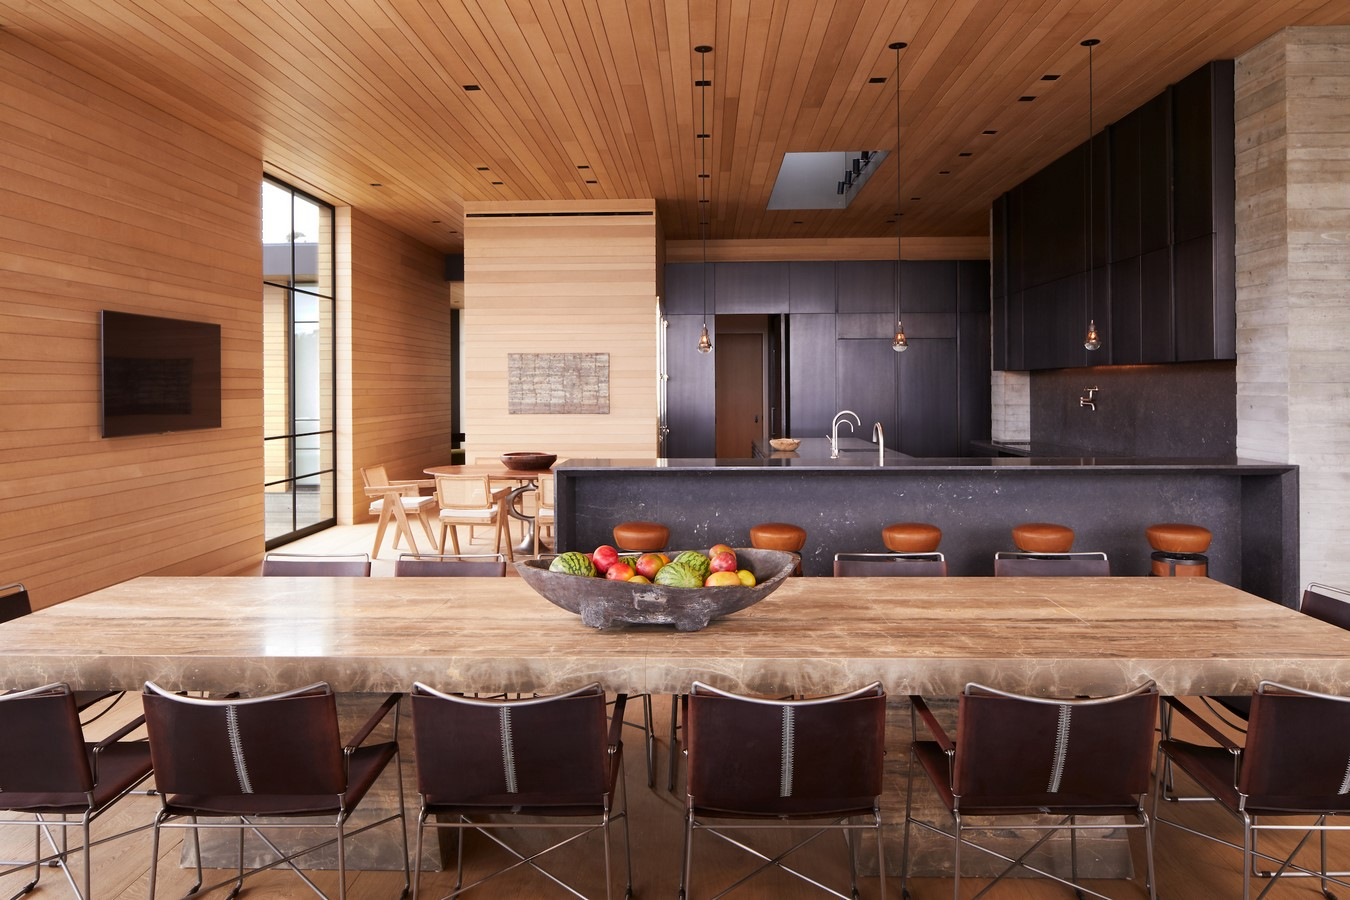 A Hillside House for Healthy Living By Christy Wolfe - Sheet2